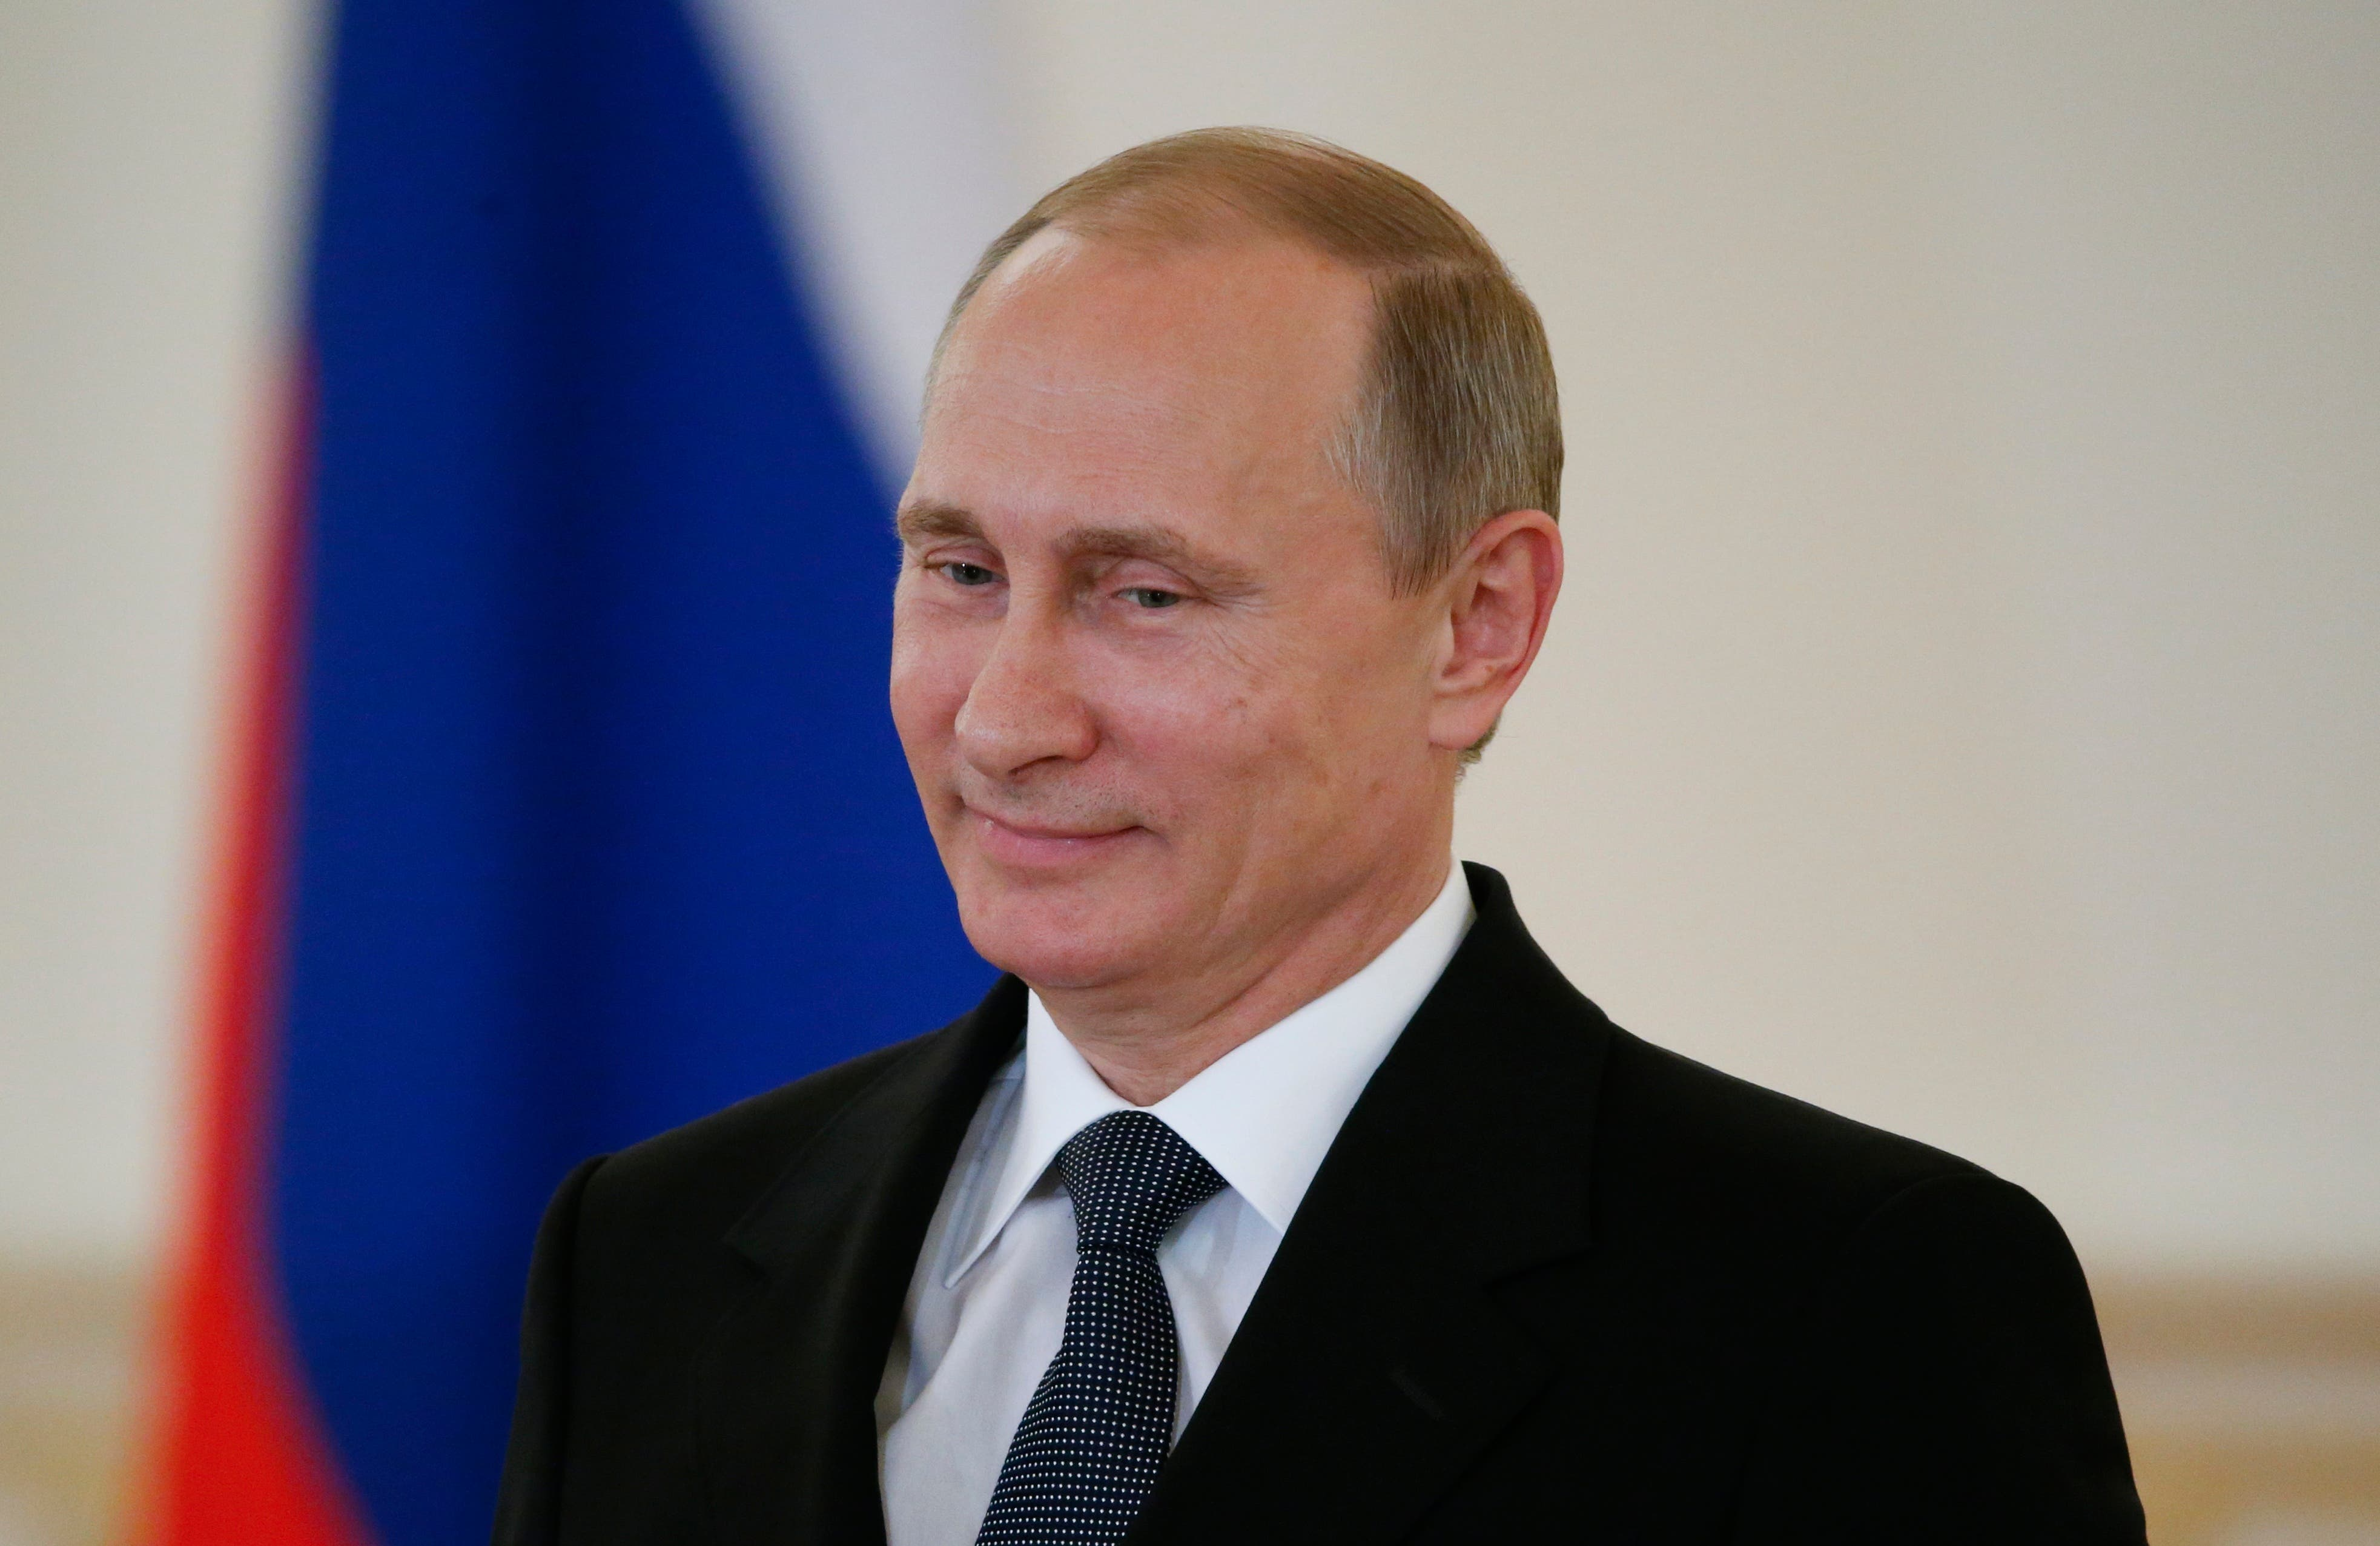 Russian President Vladimir Putin attends a ceremony of presentation of credentials by foreign ambassadors in the Kremlin in Moscow, Russia, Thursday, May 28, 2015. President Vladimir Putin accused the United States of meddling in FIFA's affairs and hinted that it was part of an attempt to take the 2018 World Cup away from his country. (Sergei Karpukhin/Pool Photo via AP)